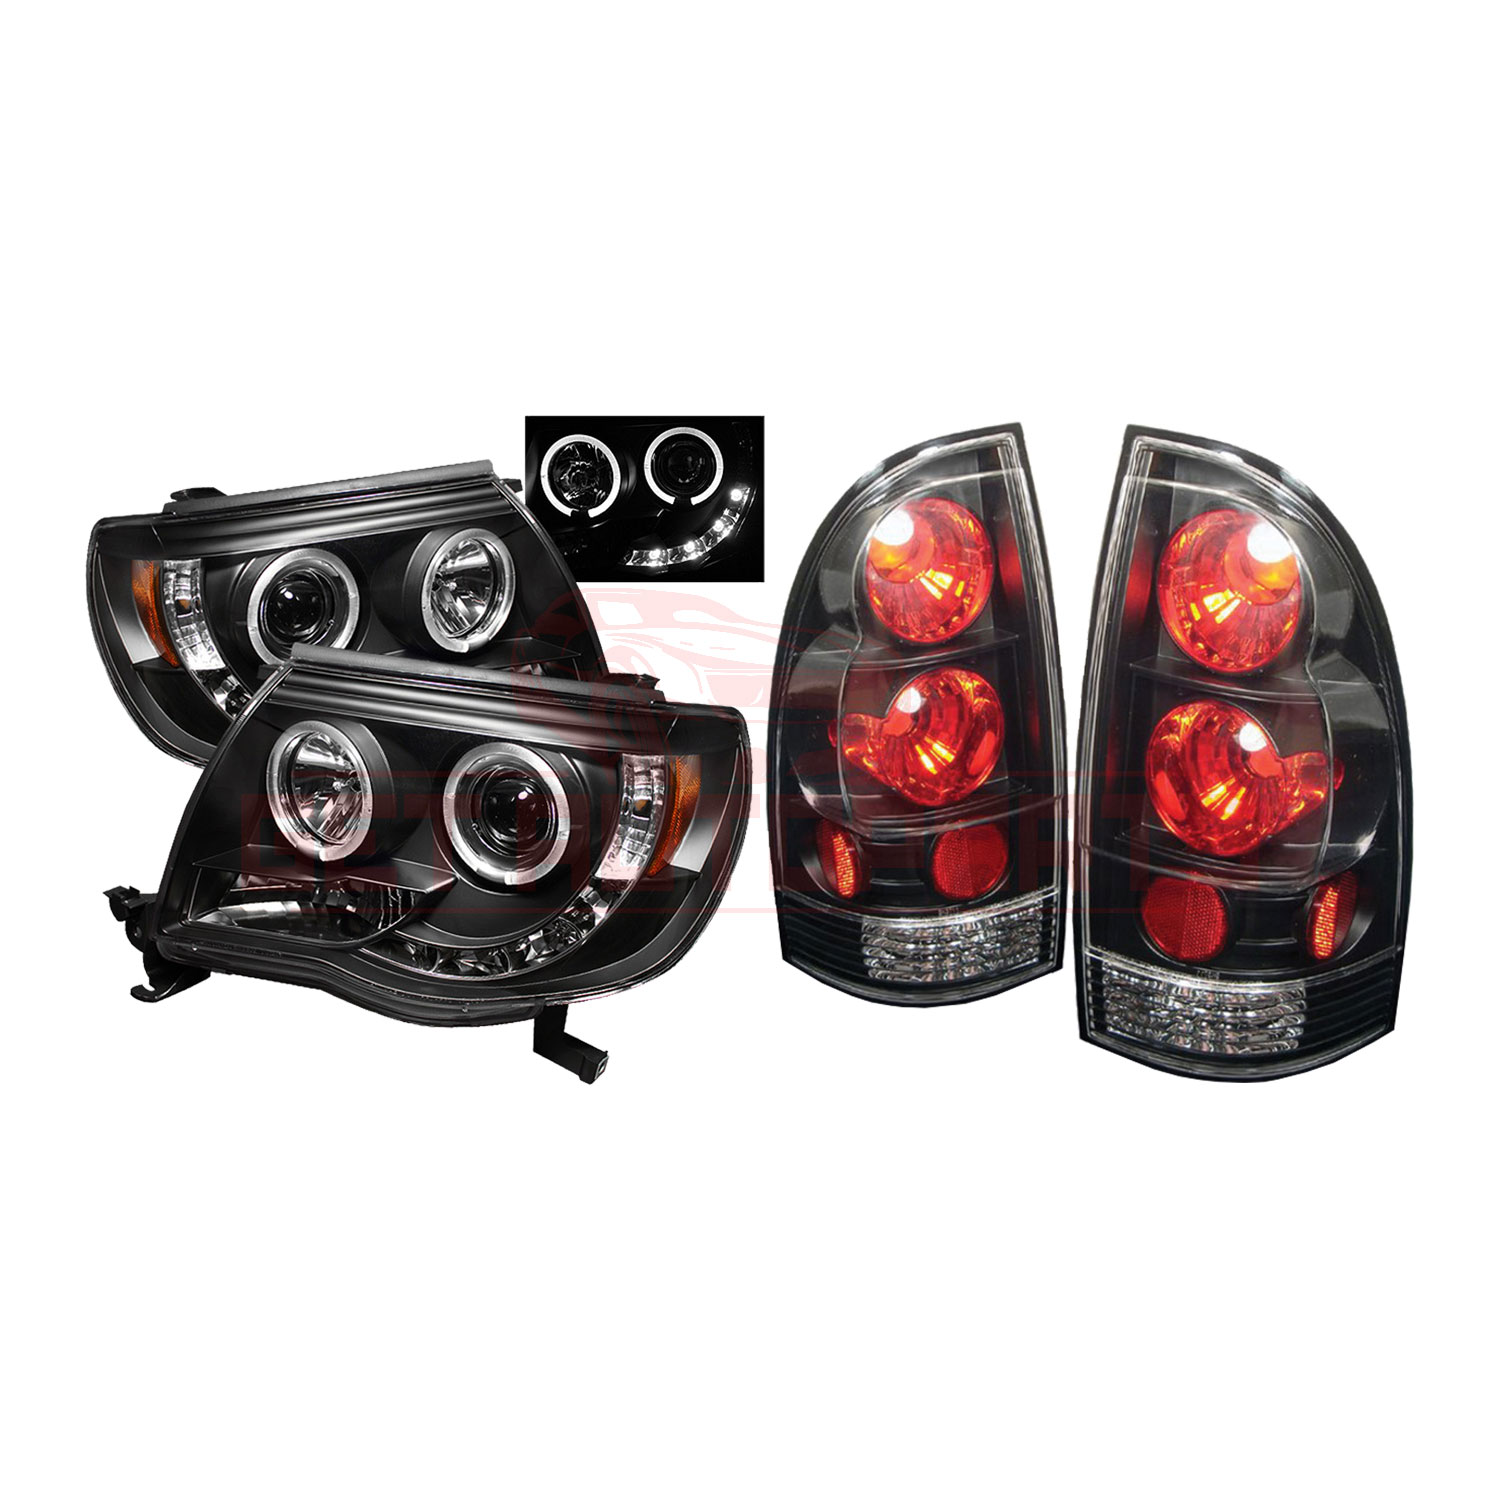 Spyder Halo LED Projector Headlights & Tail Lights Black for Toyota Tacoma 05-11 part in Headlight & Tail Light Covers category